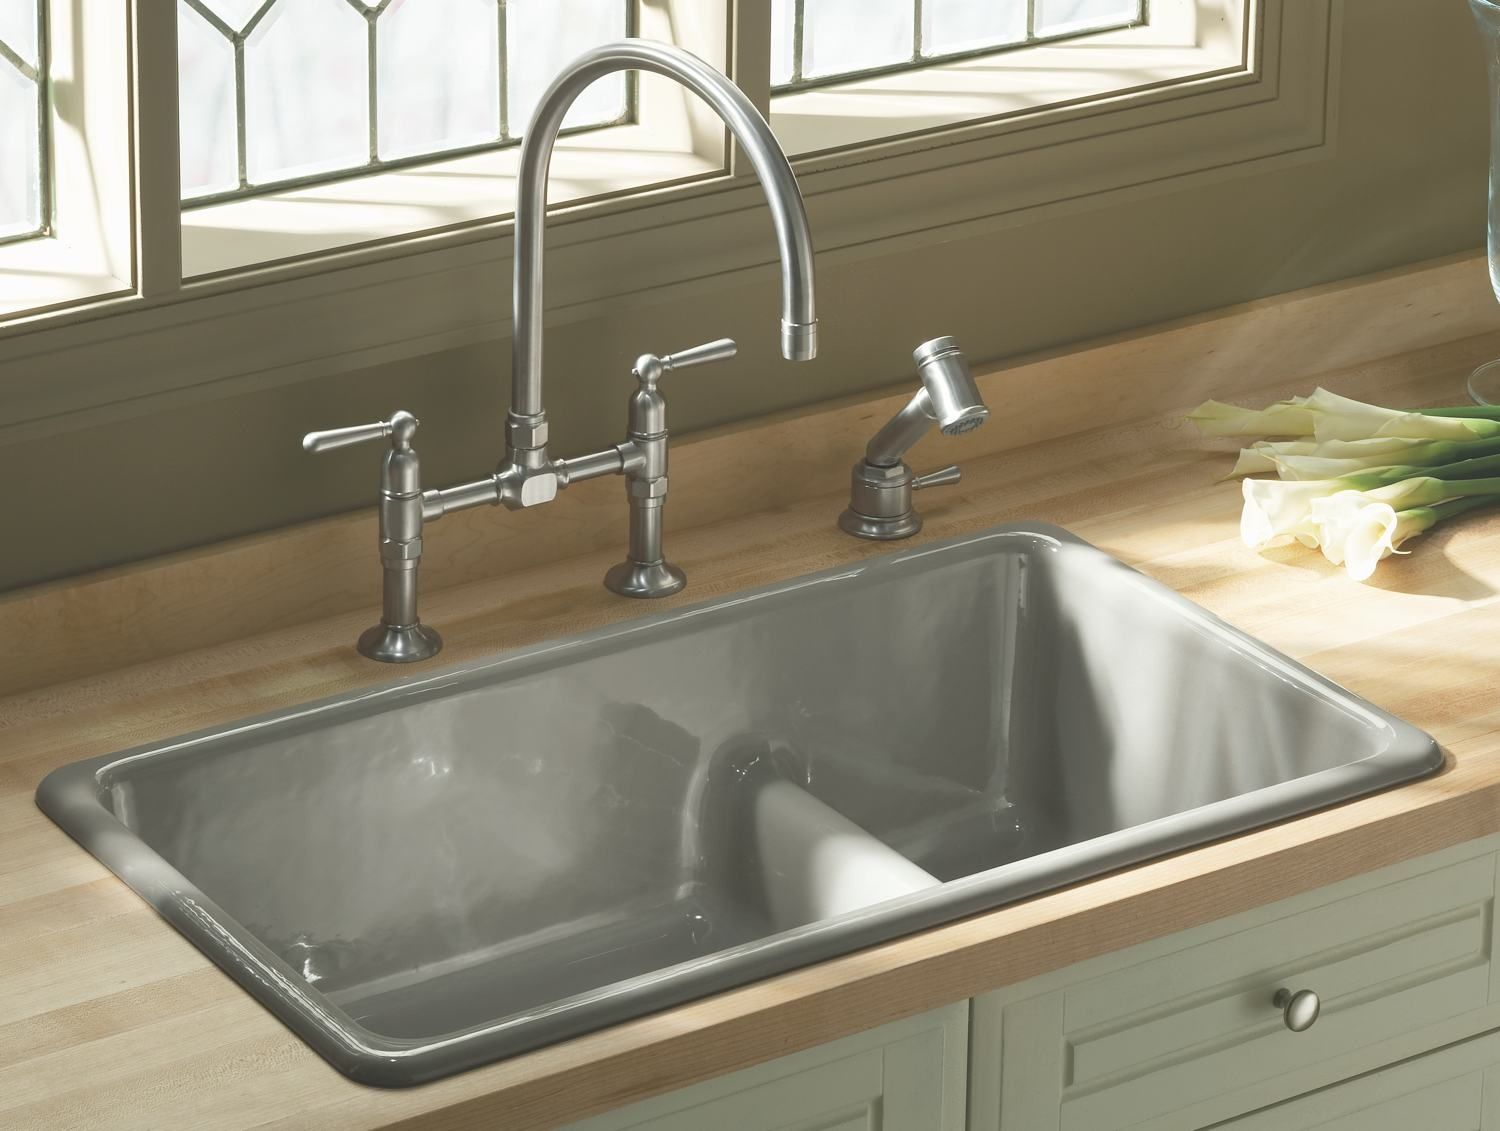 The 7 Different Types Of Kitchen Sinks With Images Kohler